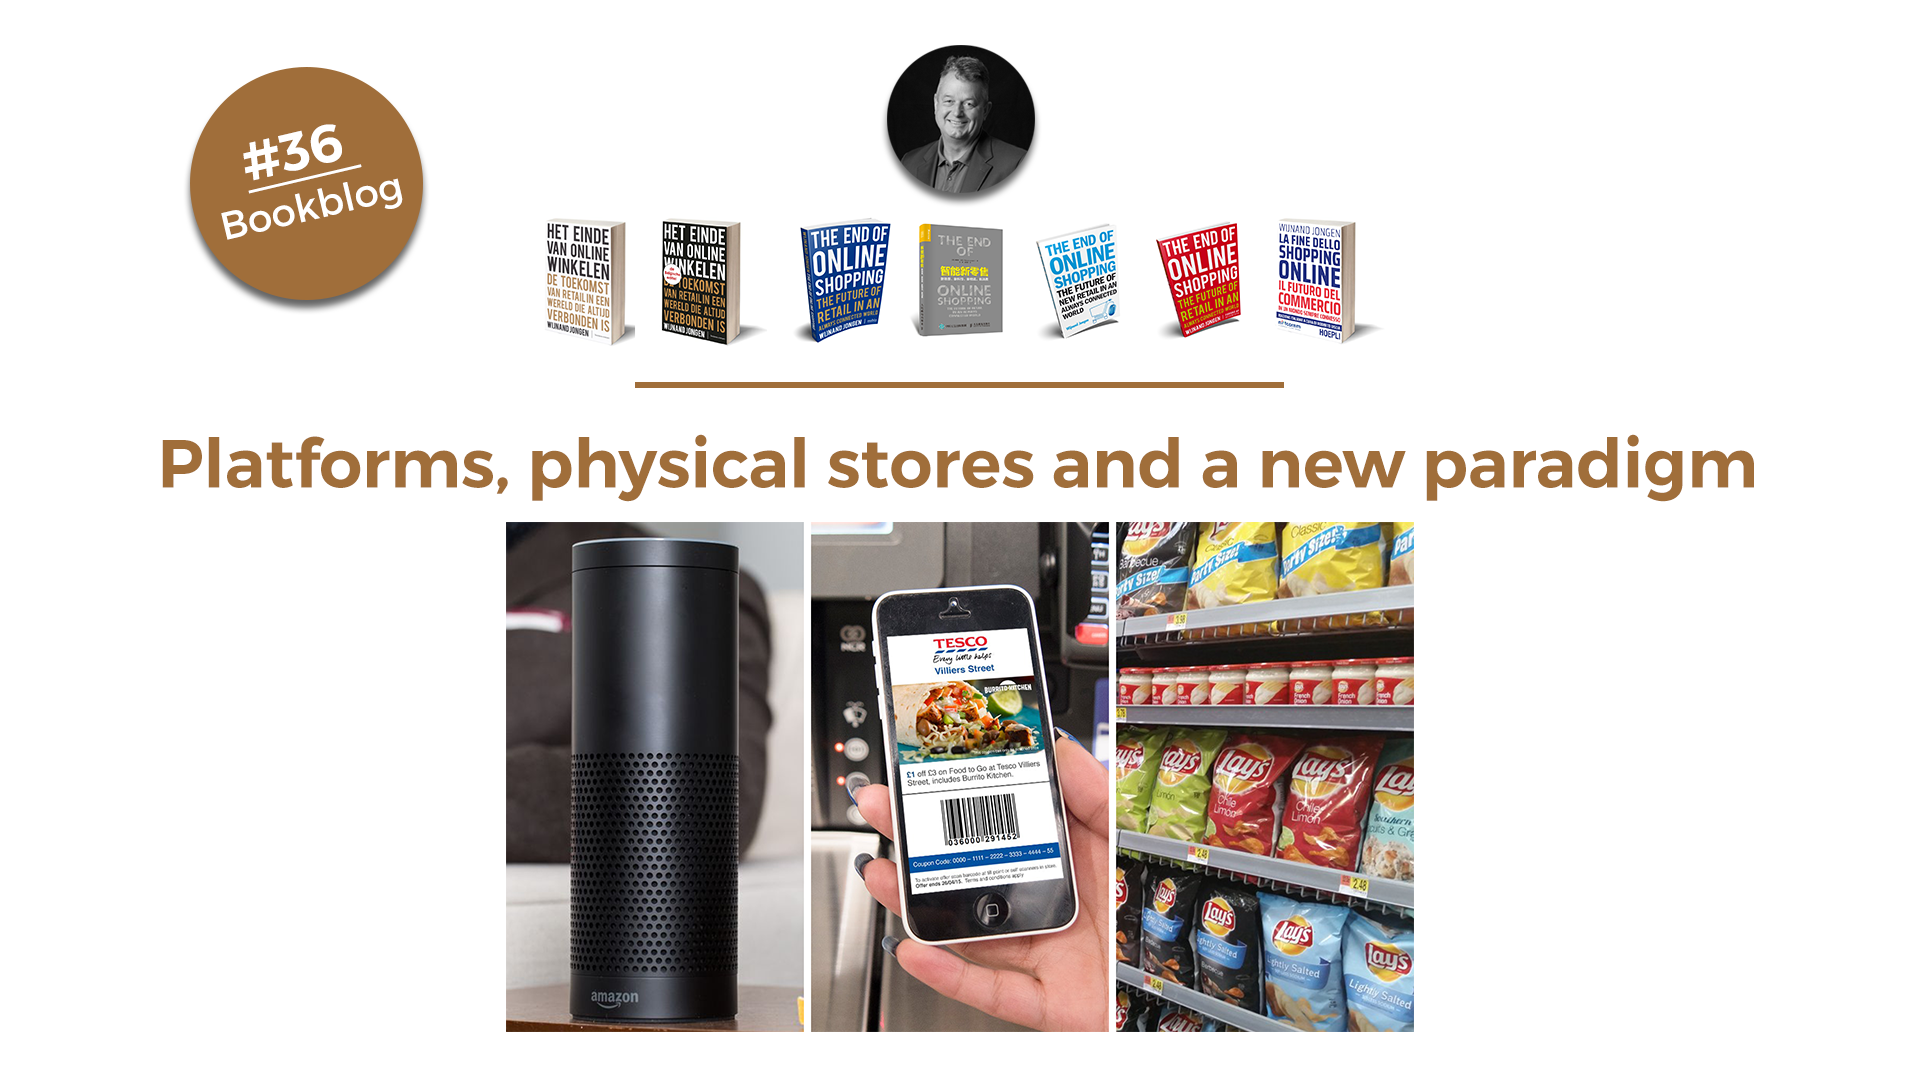 Platforms, physical stores and a new paradigm